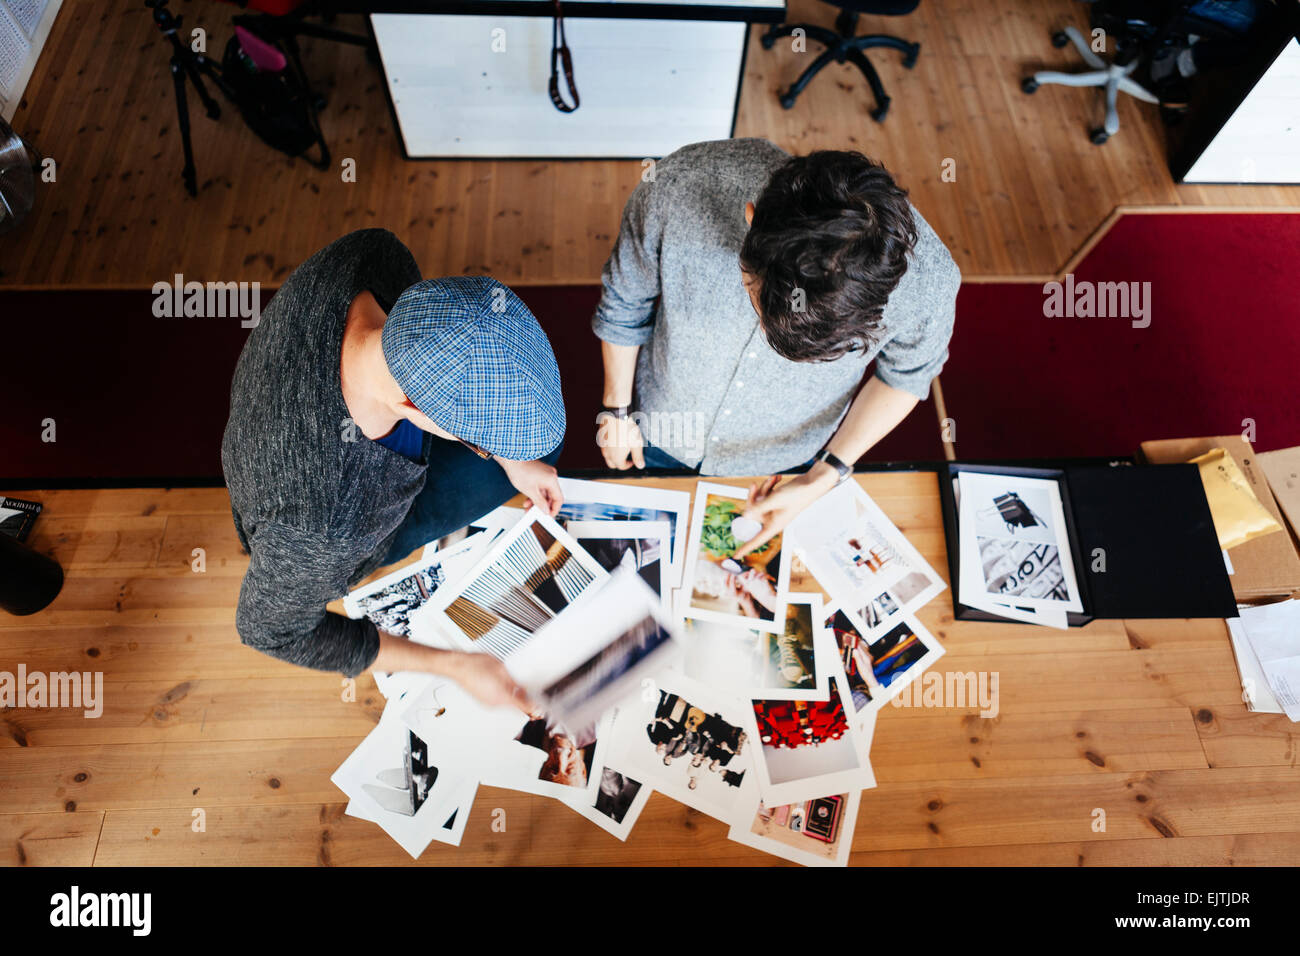 High angle view of businessmen analyzing photographs at desk in office - Stock Image